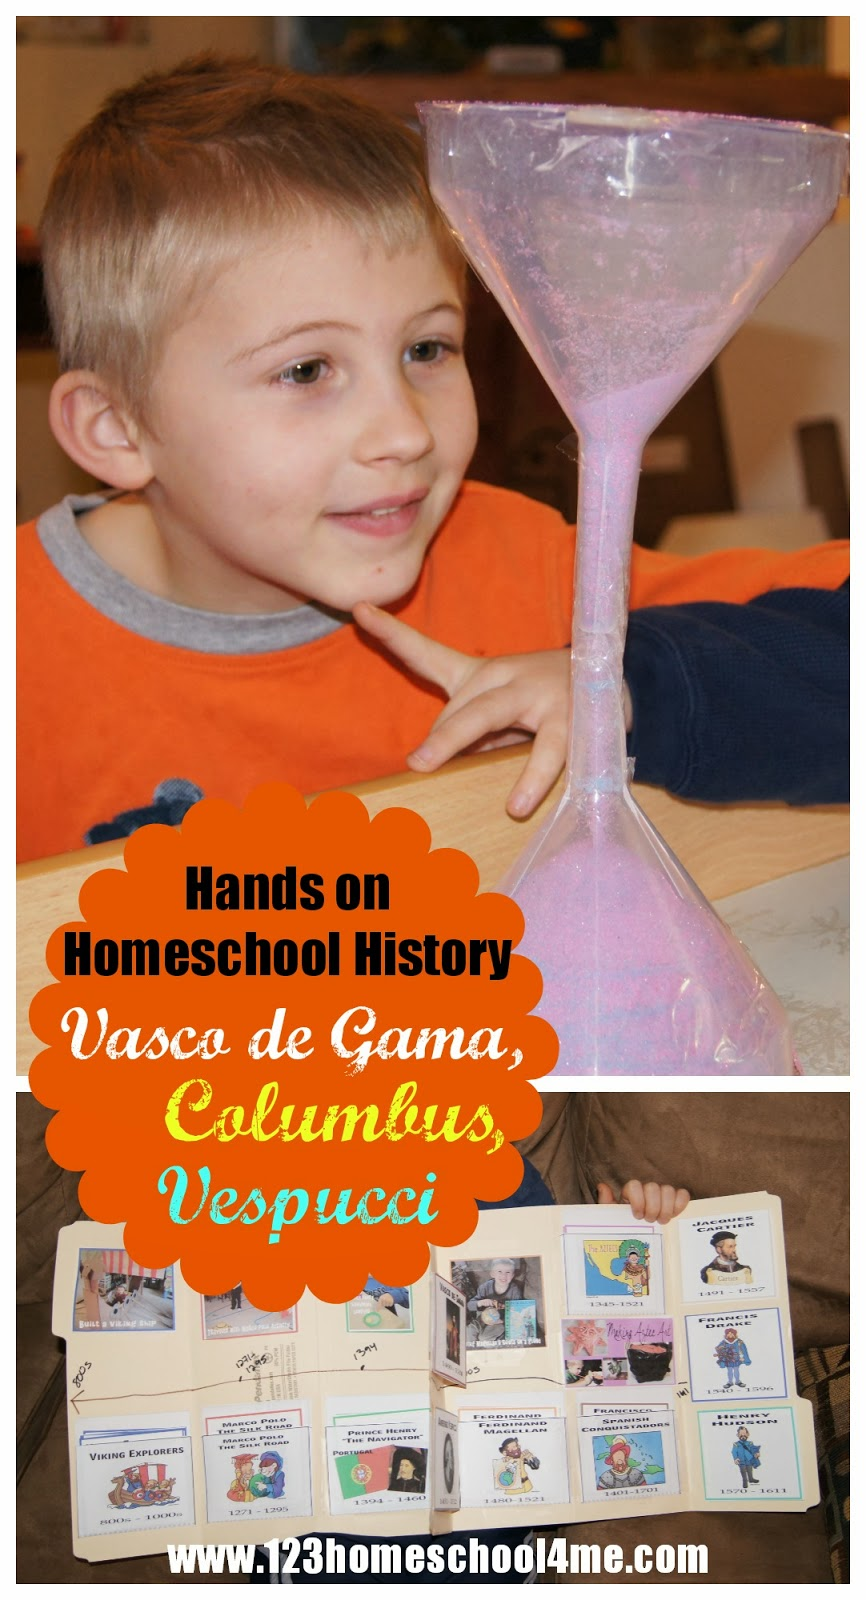 Fun, hands on history activities for homeschool, preschool, kindergarten, first grade, 2nd grade, 3rd grade, 4th garde, 5th grade, and 6th grade students to learn about famous explorers - Vaco de Gama, Columbus, and Vespucci for Kids